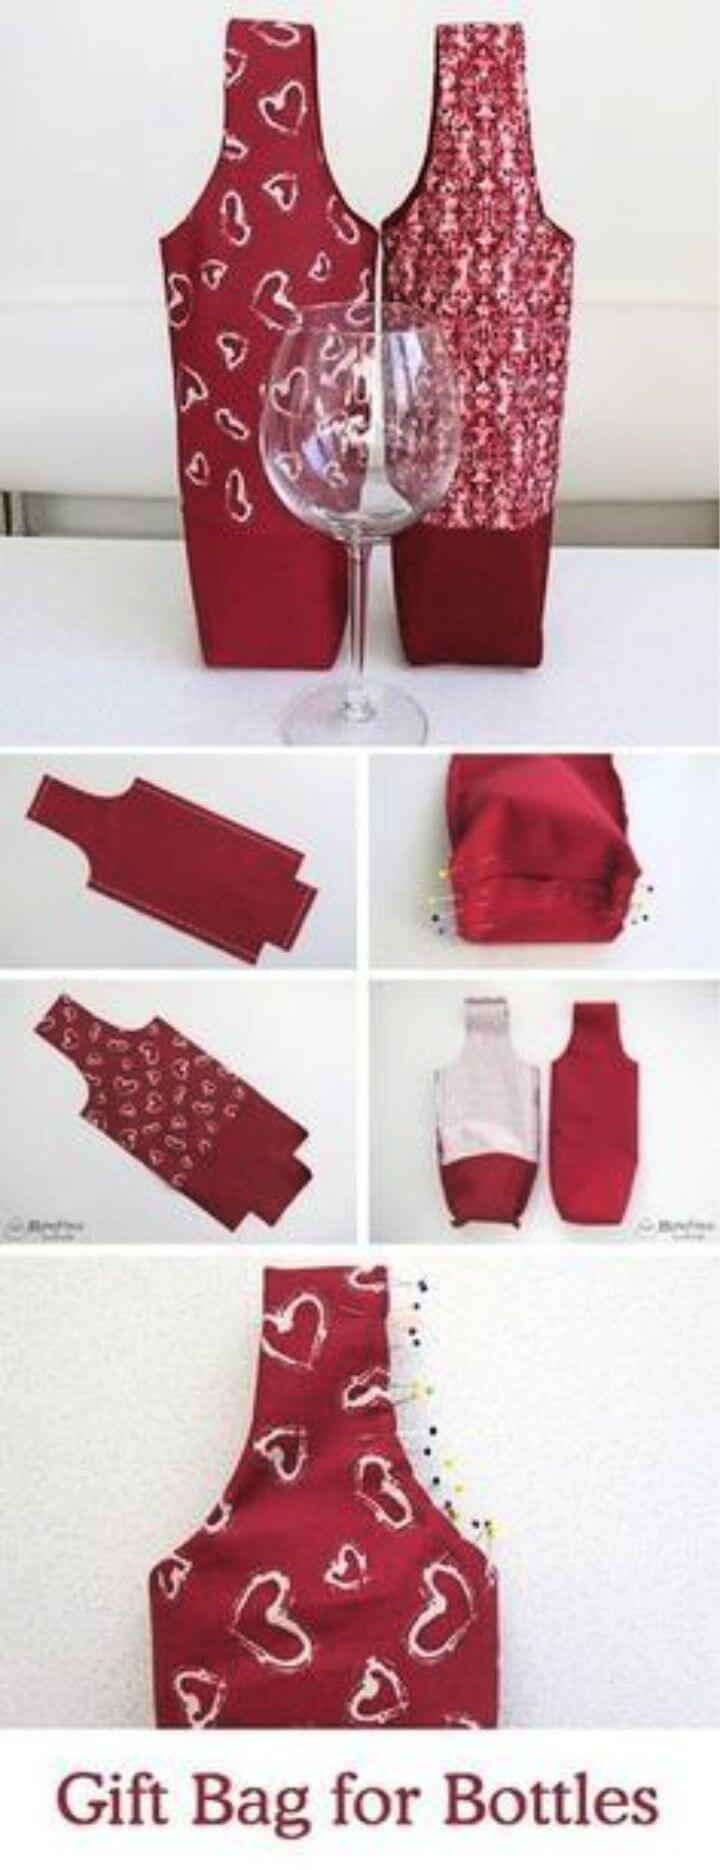 Tutorial on a Gift Bag for Bottles